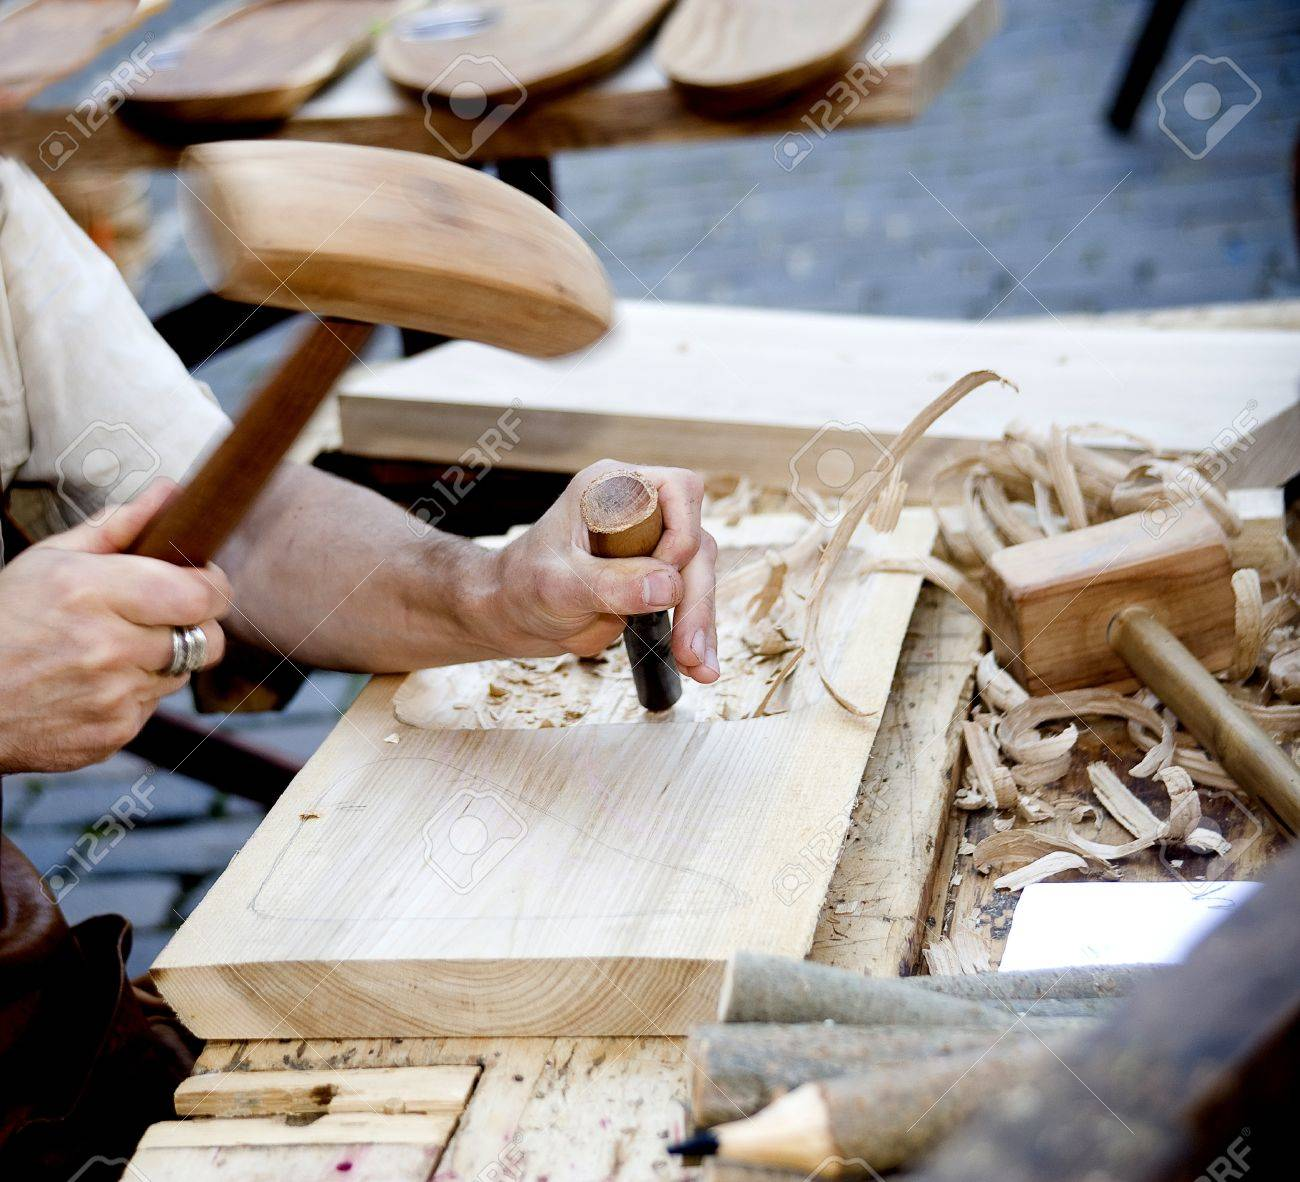 The joiner does a dimple in a board, working with a chisel - 14993523